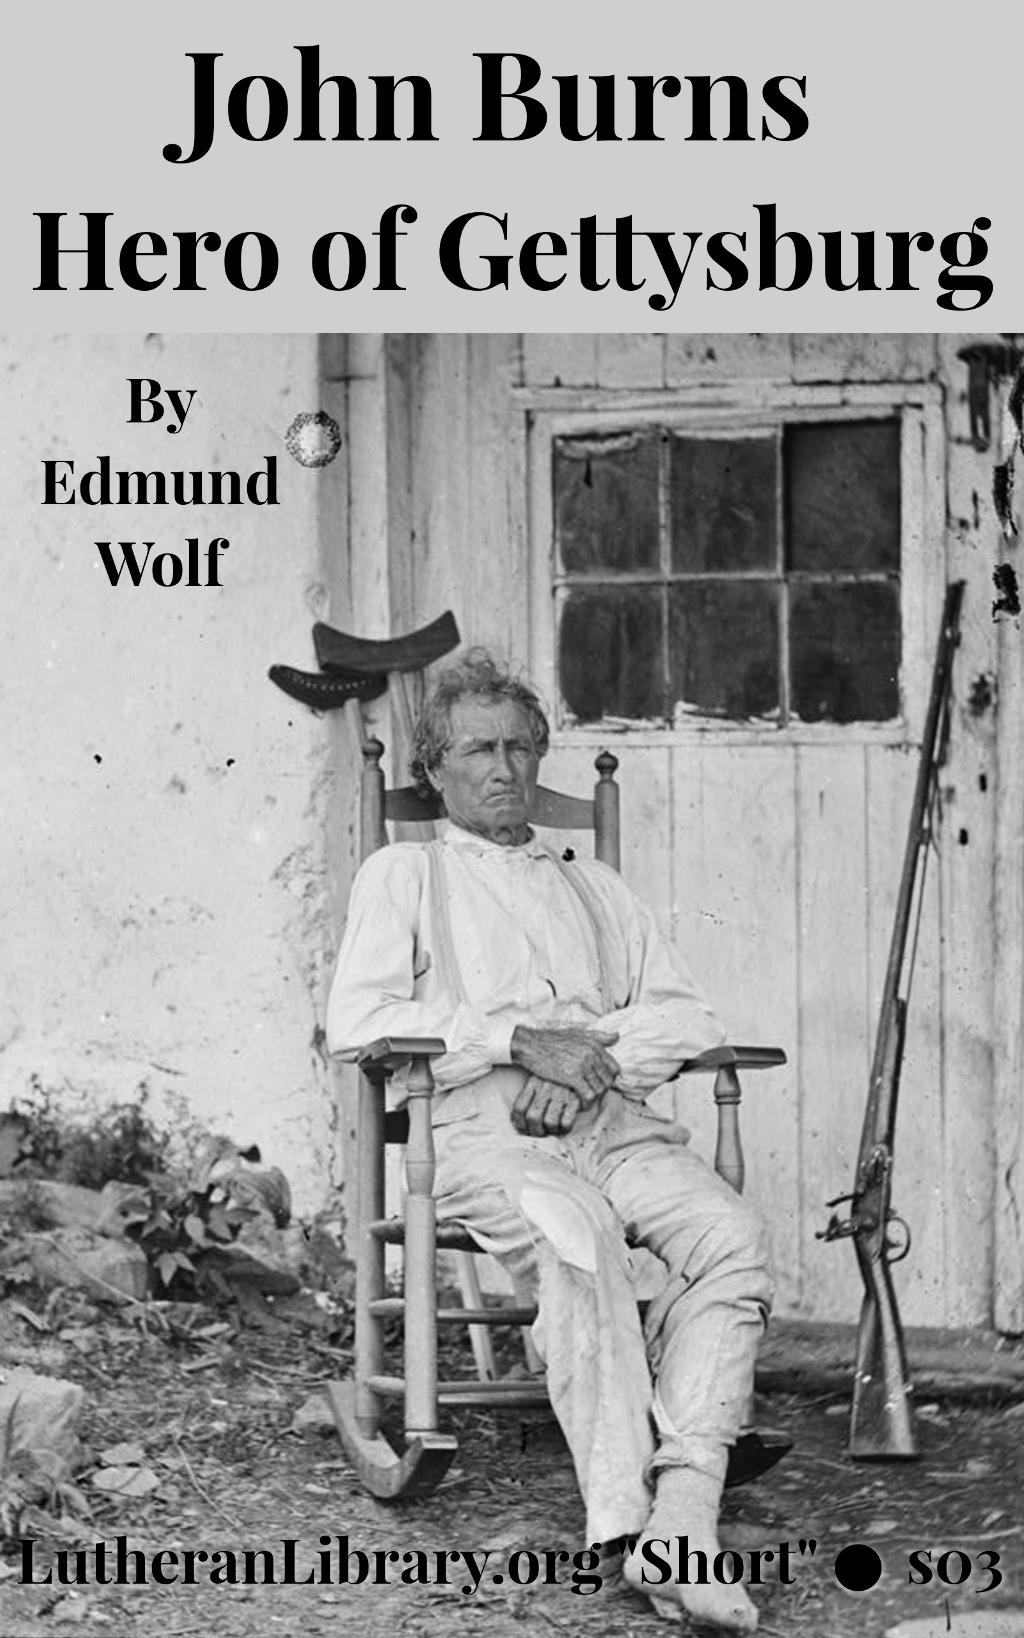 John Burns: The Hero of Gettysburg by Edmund Jacob Wolf